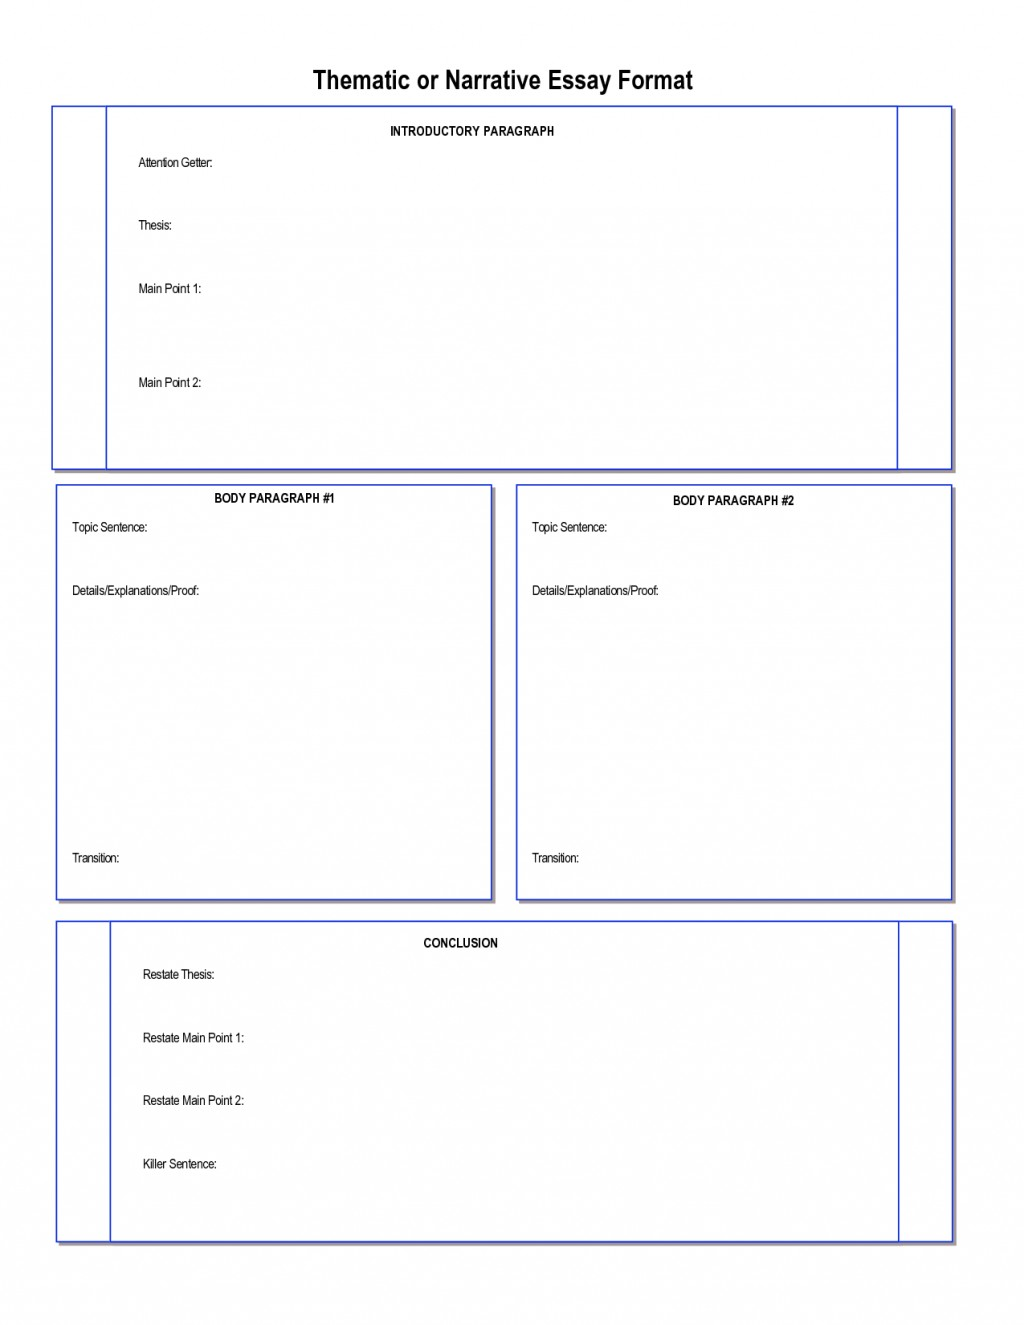 Inventory management term papers